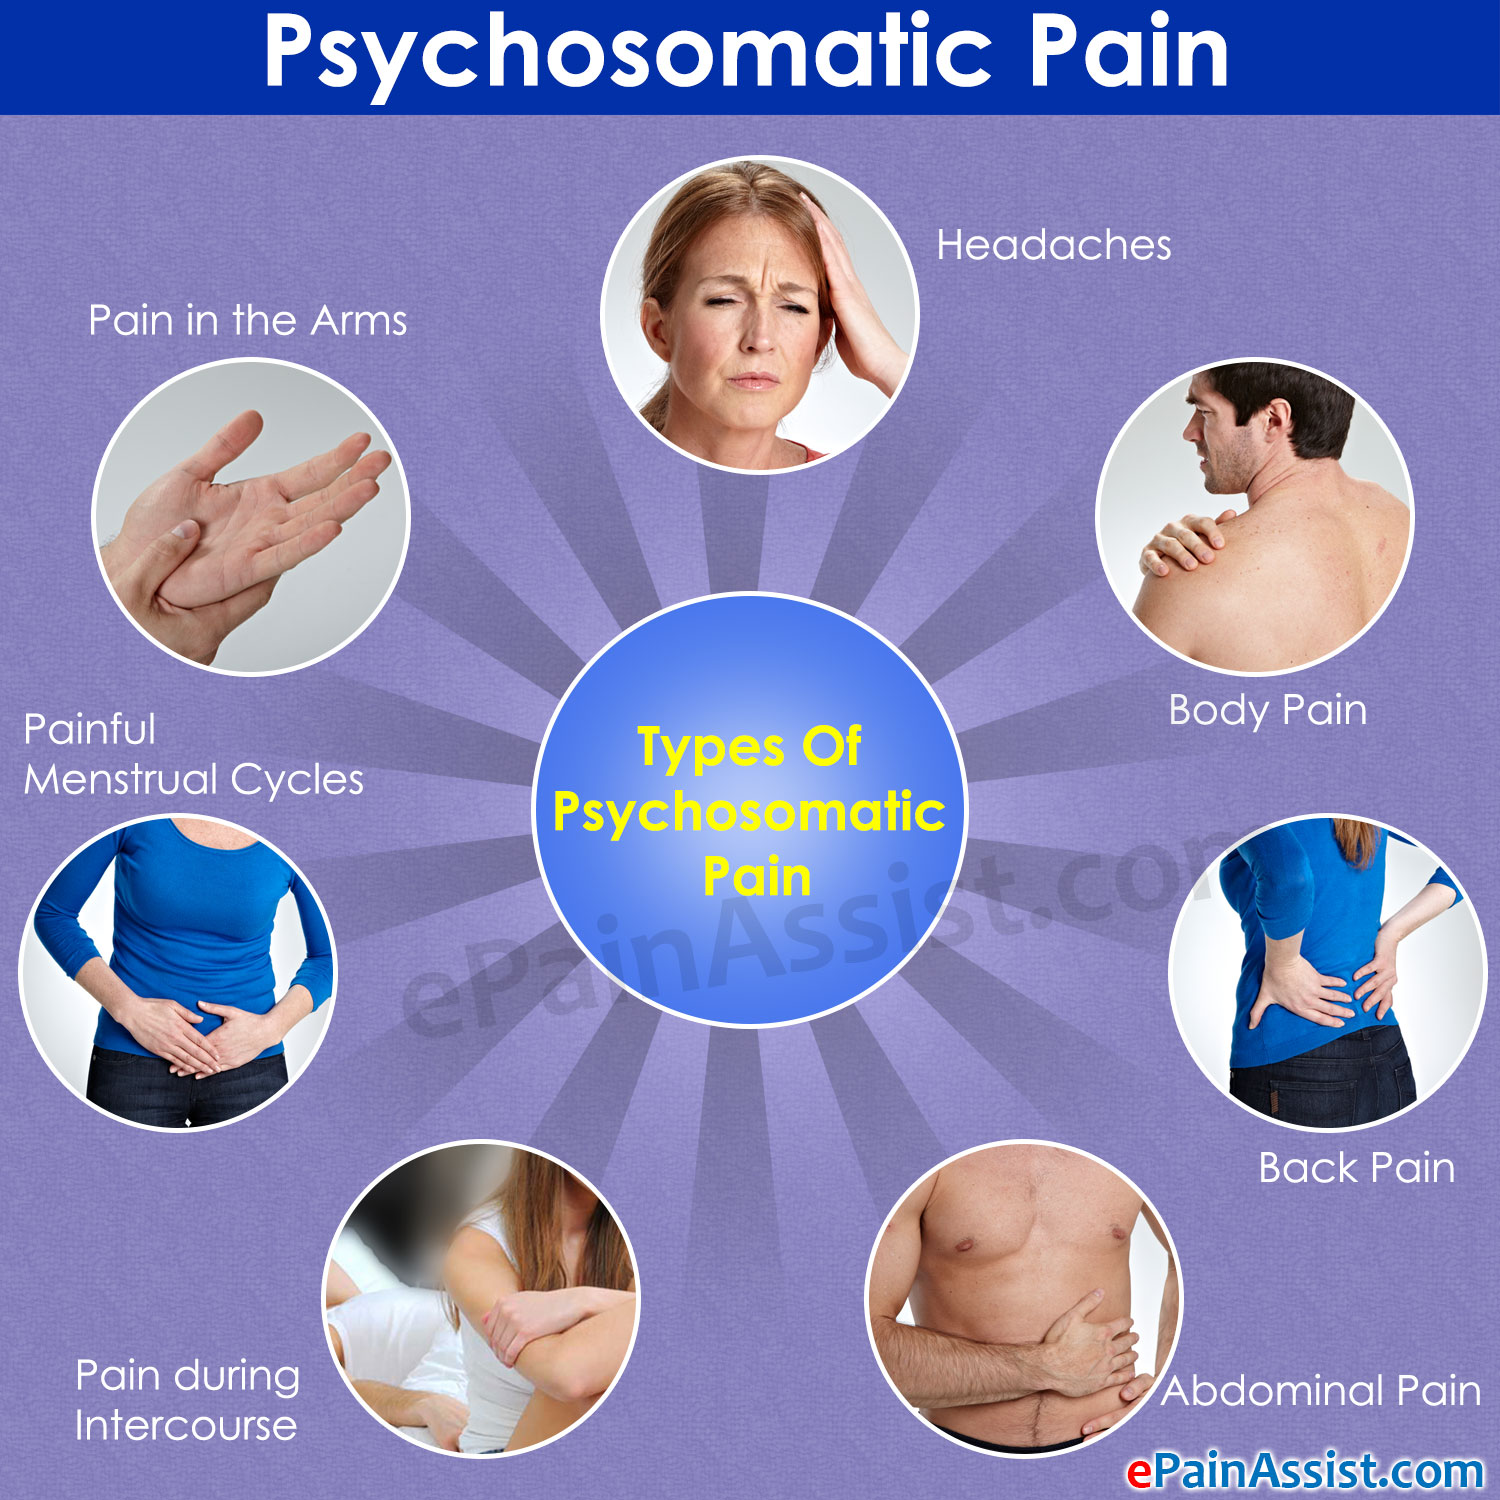 Types Of Psychosomatic Pain